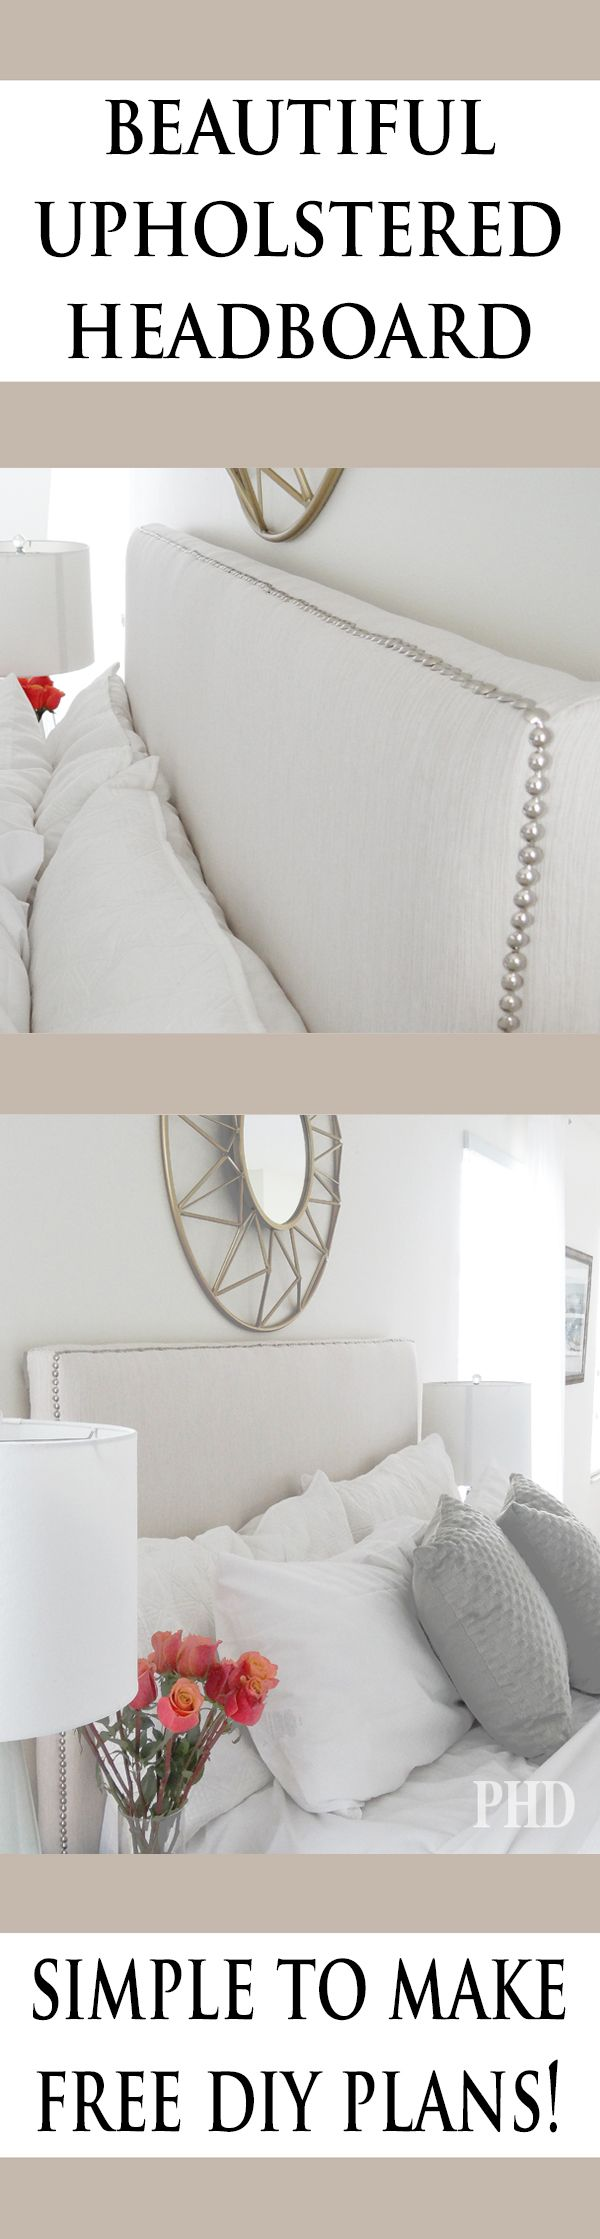 diy headboard upholstered.  Best step by step tutorial out there for making an upholstered Headboard.  Nailhead Trim.  DIY Home Decor.